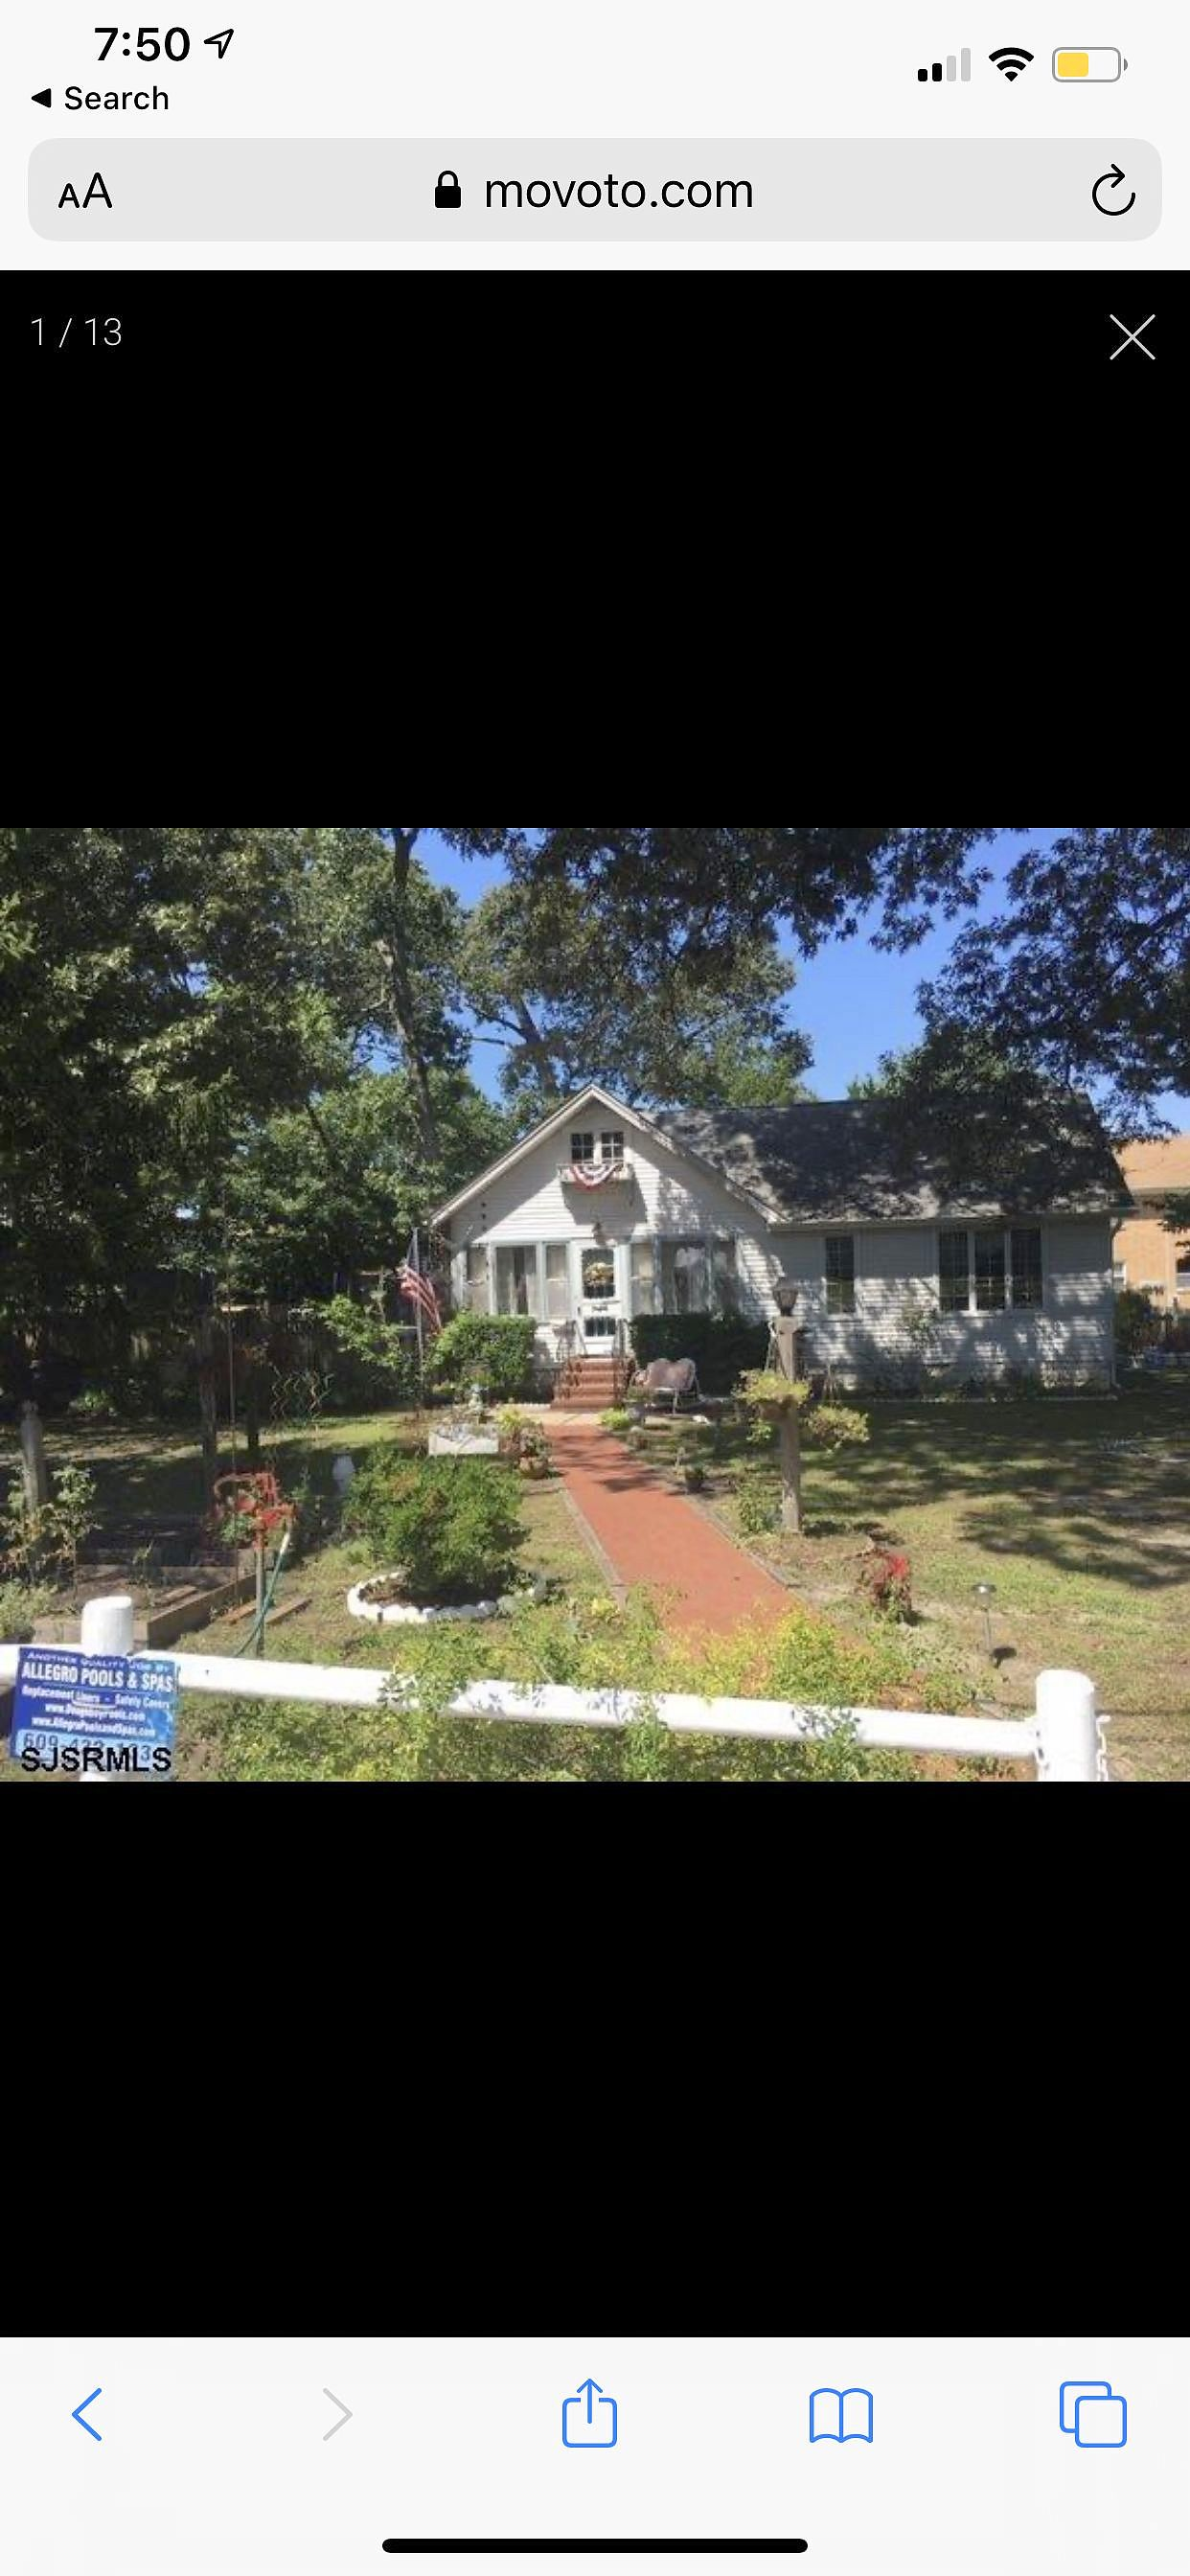 2 Bedrooms / 1 Bathrooms - Est. $900.00 / Month* for rent in Somers Point, NJ